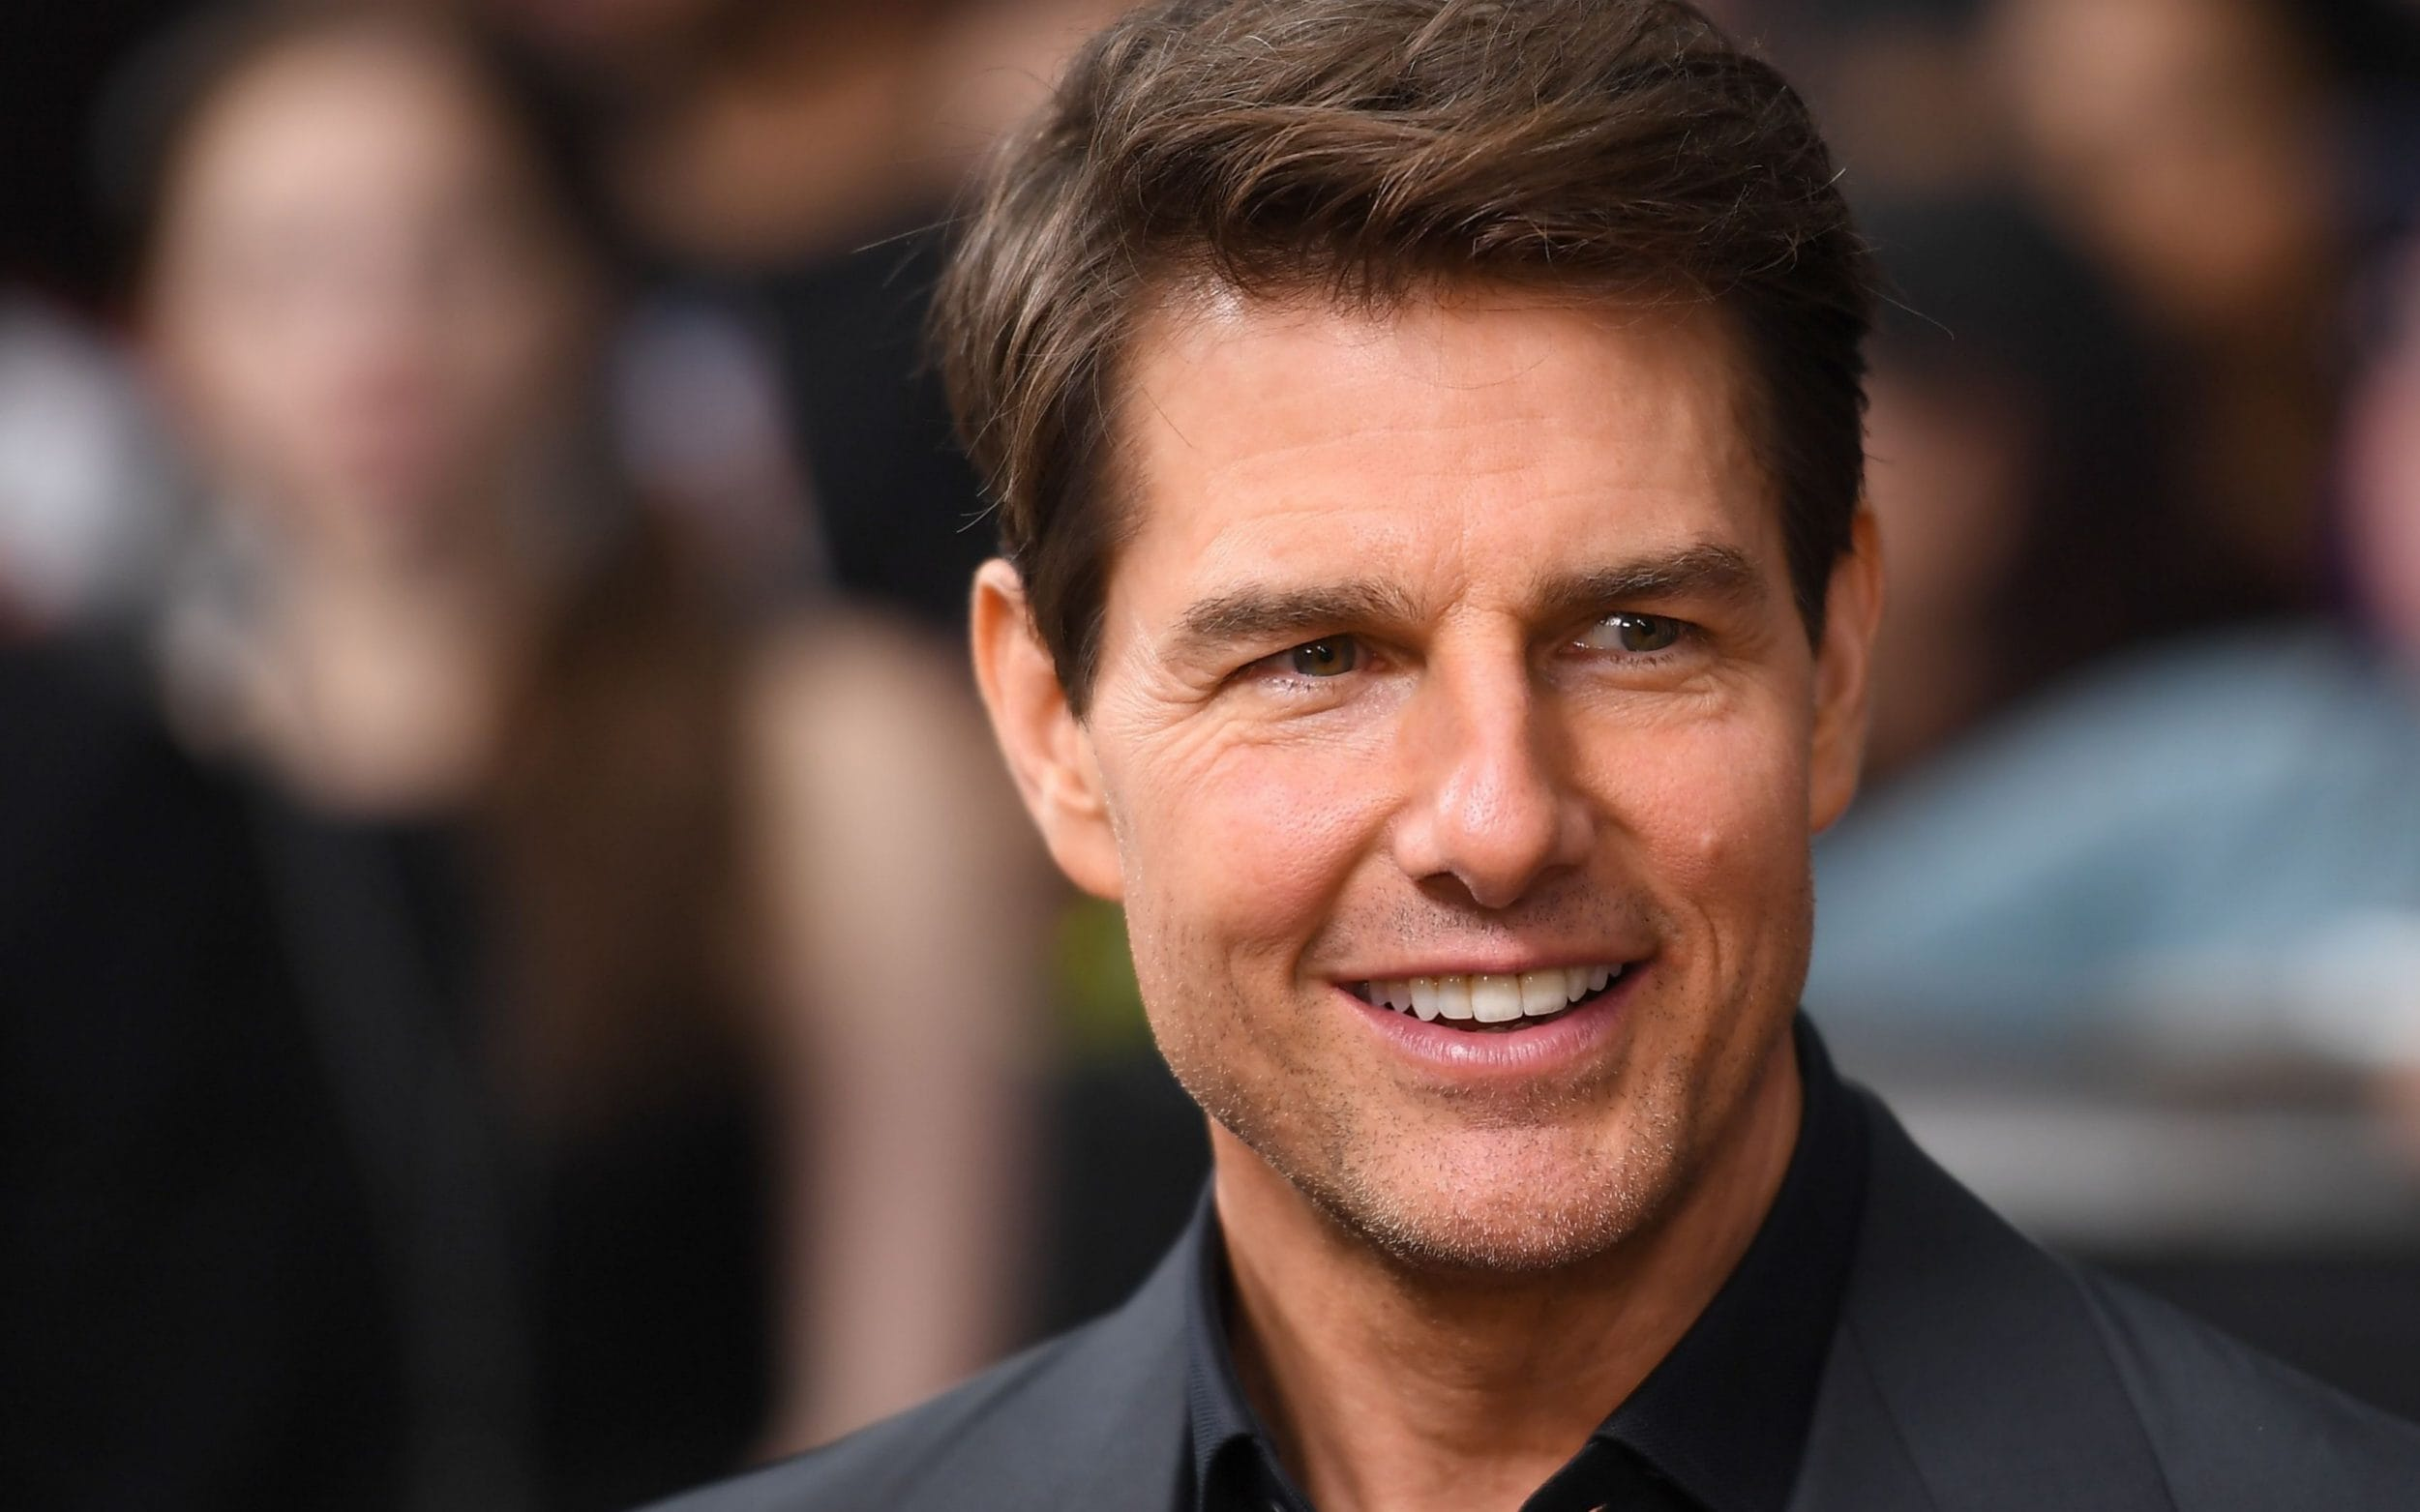 Tom Cruise Hits Out At Motion Smoothing On High